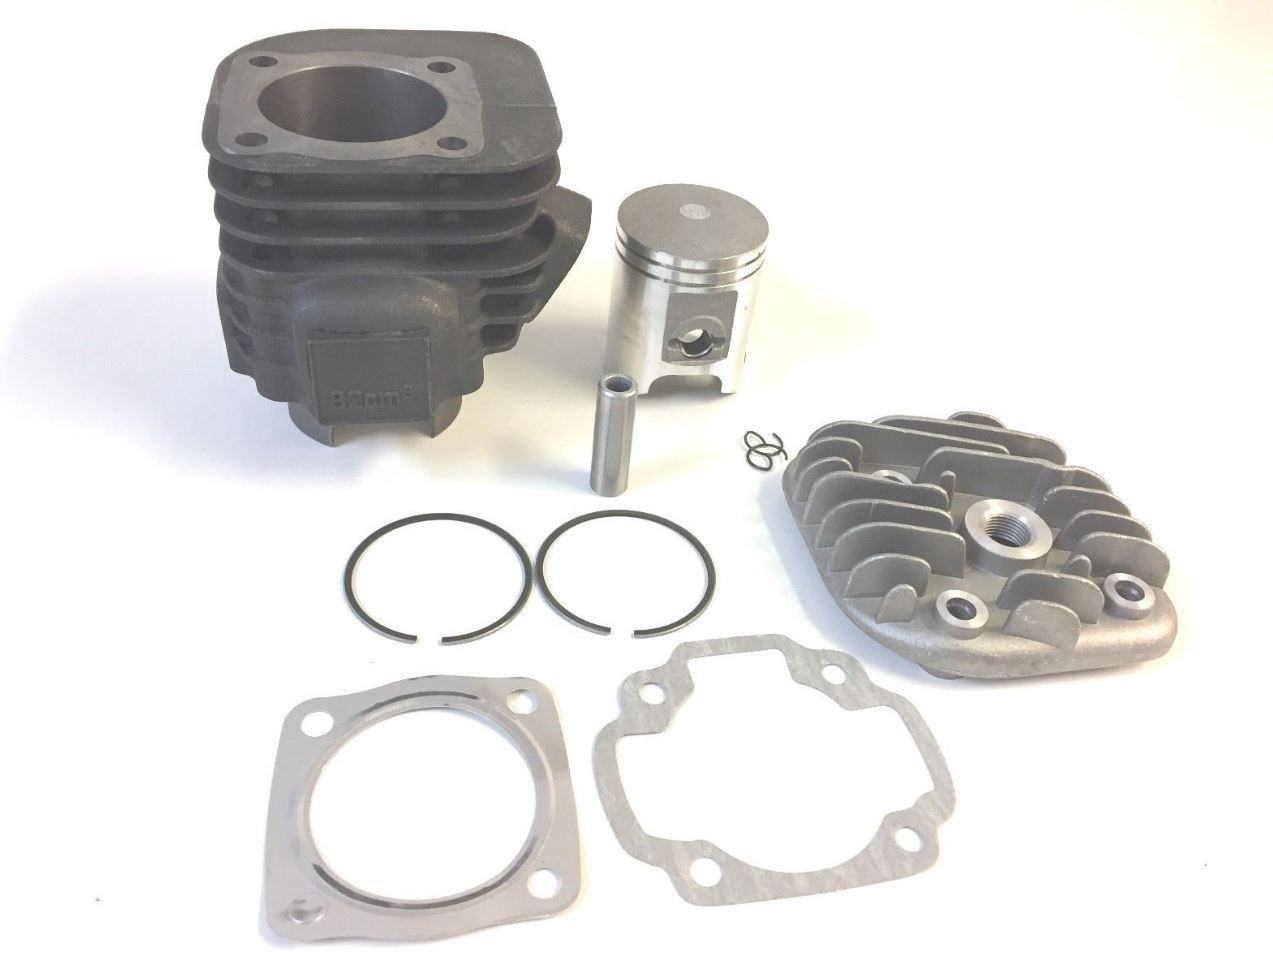 ETON VIPER 90 90R 2 STROKE AXL-90 90CC ATV CYLINDER REBUILD ENGINE TOP END KIT